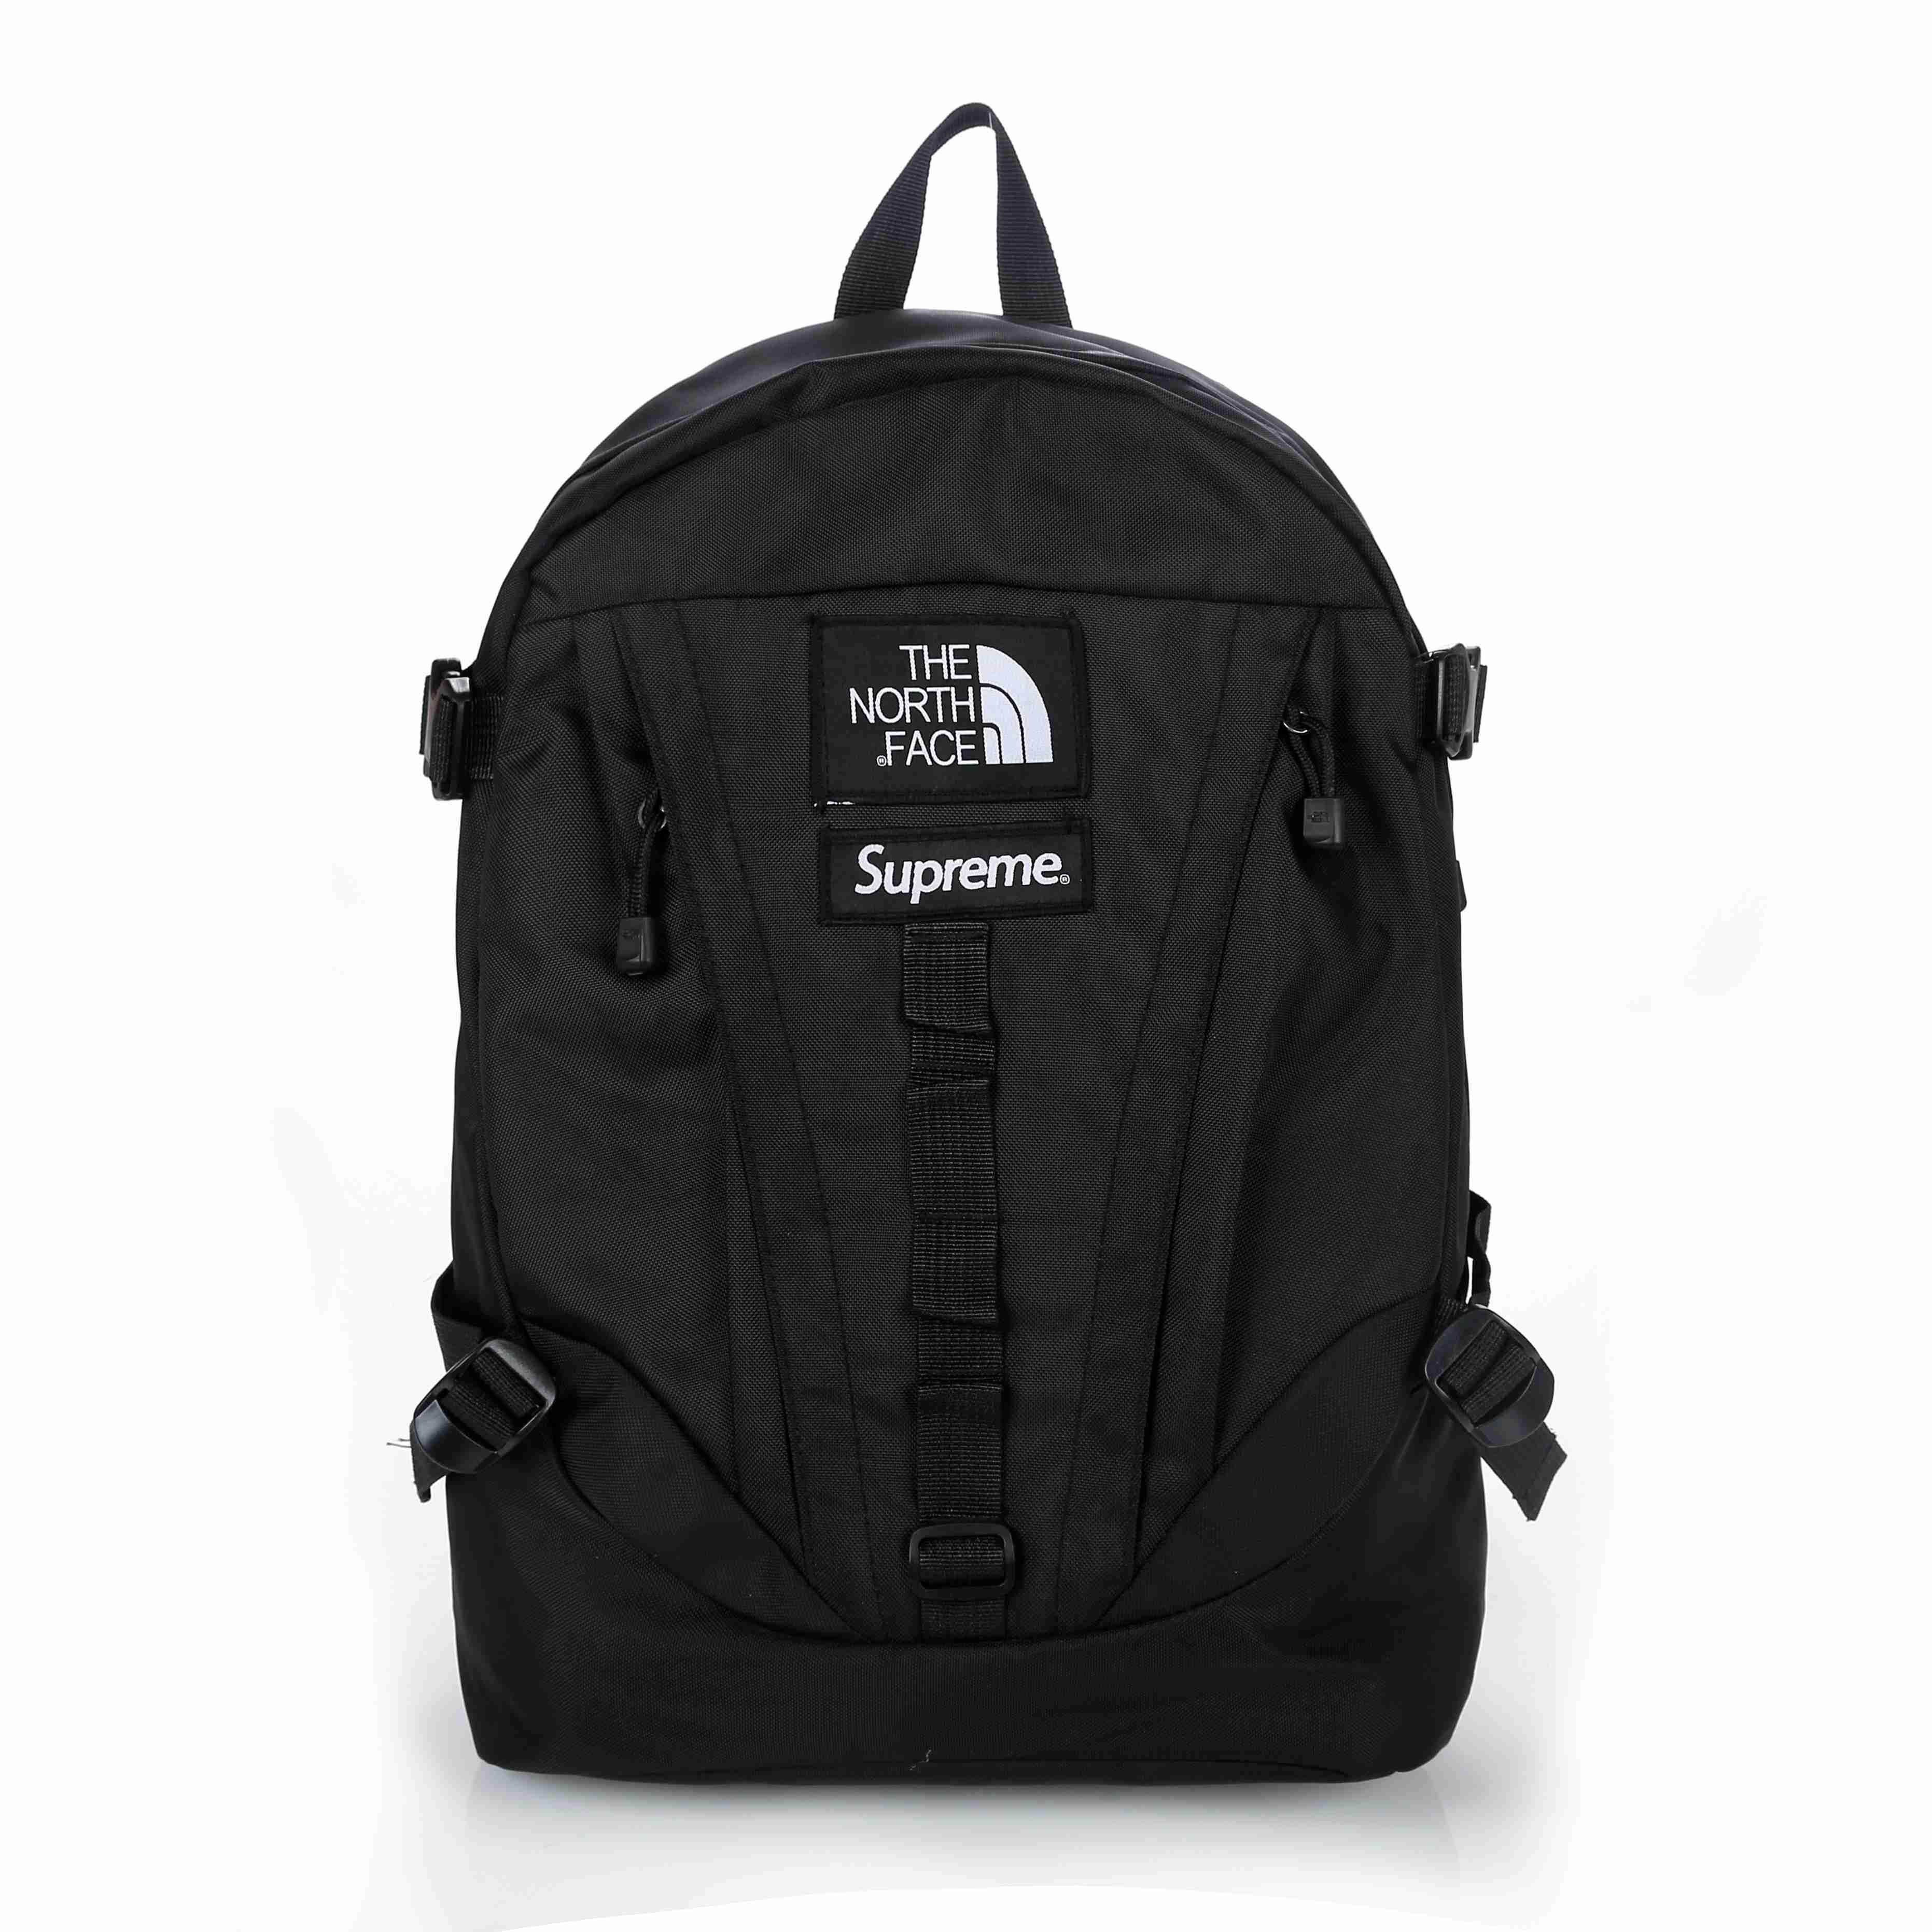 42af12989dde supreme_Ready Stock fashion Simple Multifunction Large Capacity men and  woman backpack casual sports Travel Laptop Shoulder Bag